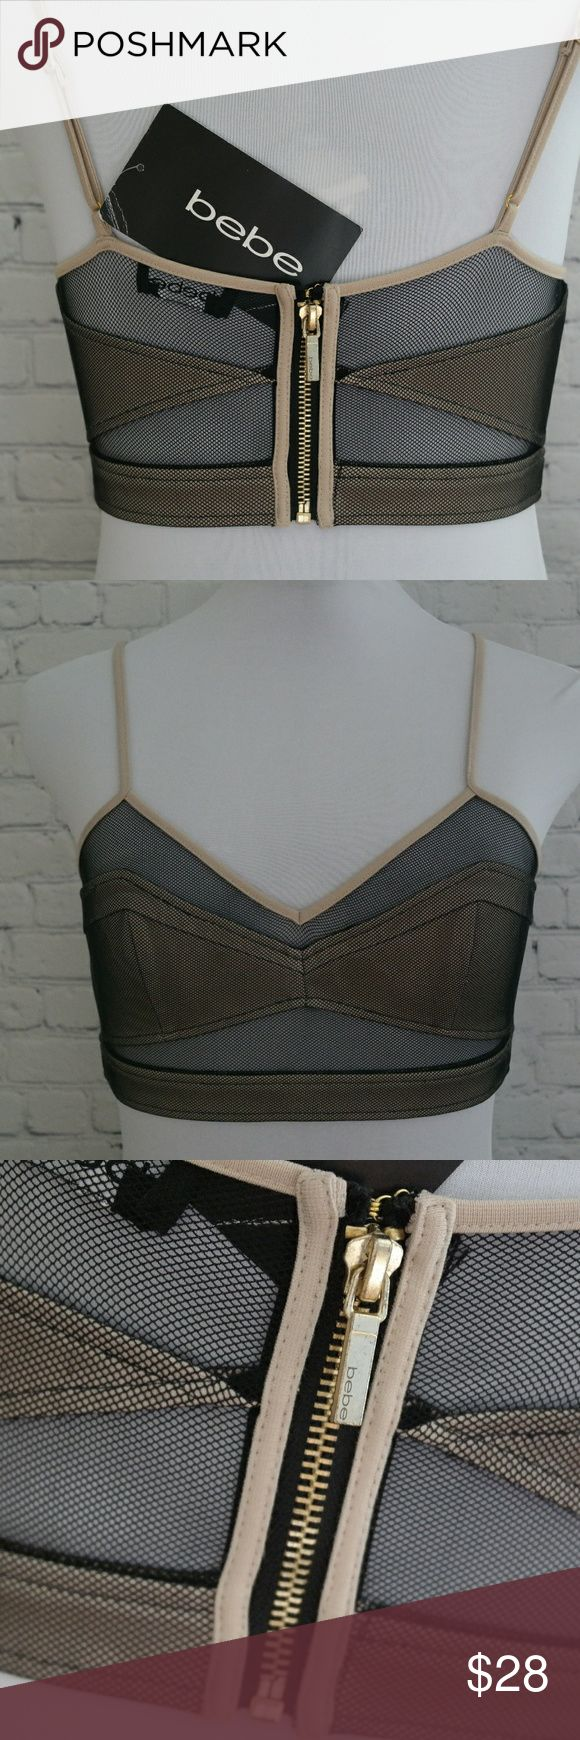 Bebe Net Mesh Zip Up Bodycon Crop Top Bralette S Sexy cut out crop top with mesh netting and gold hardware zip up back. Can be worn with high waisted skirt, jeans or as a bralette under a cute tank top.  Nwt bebe Tops Crop Tops